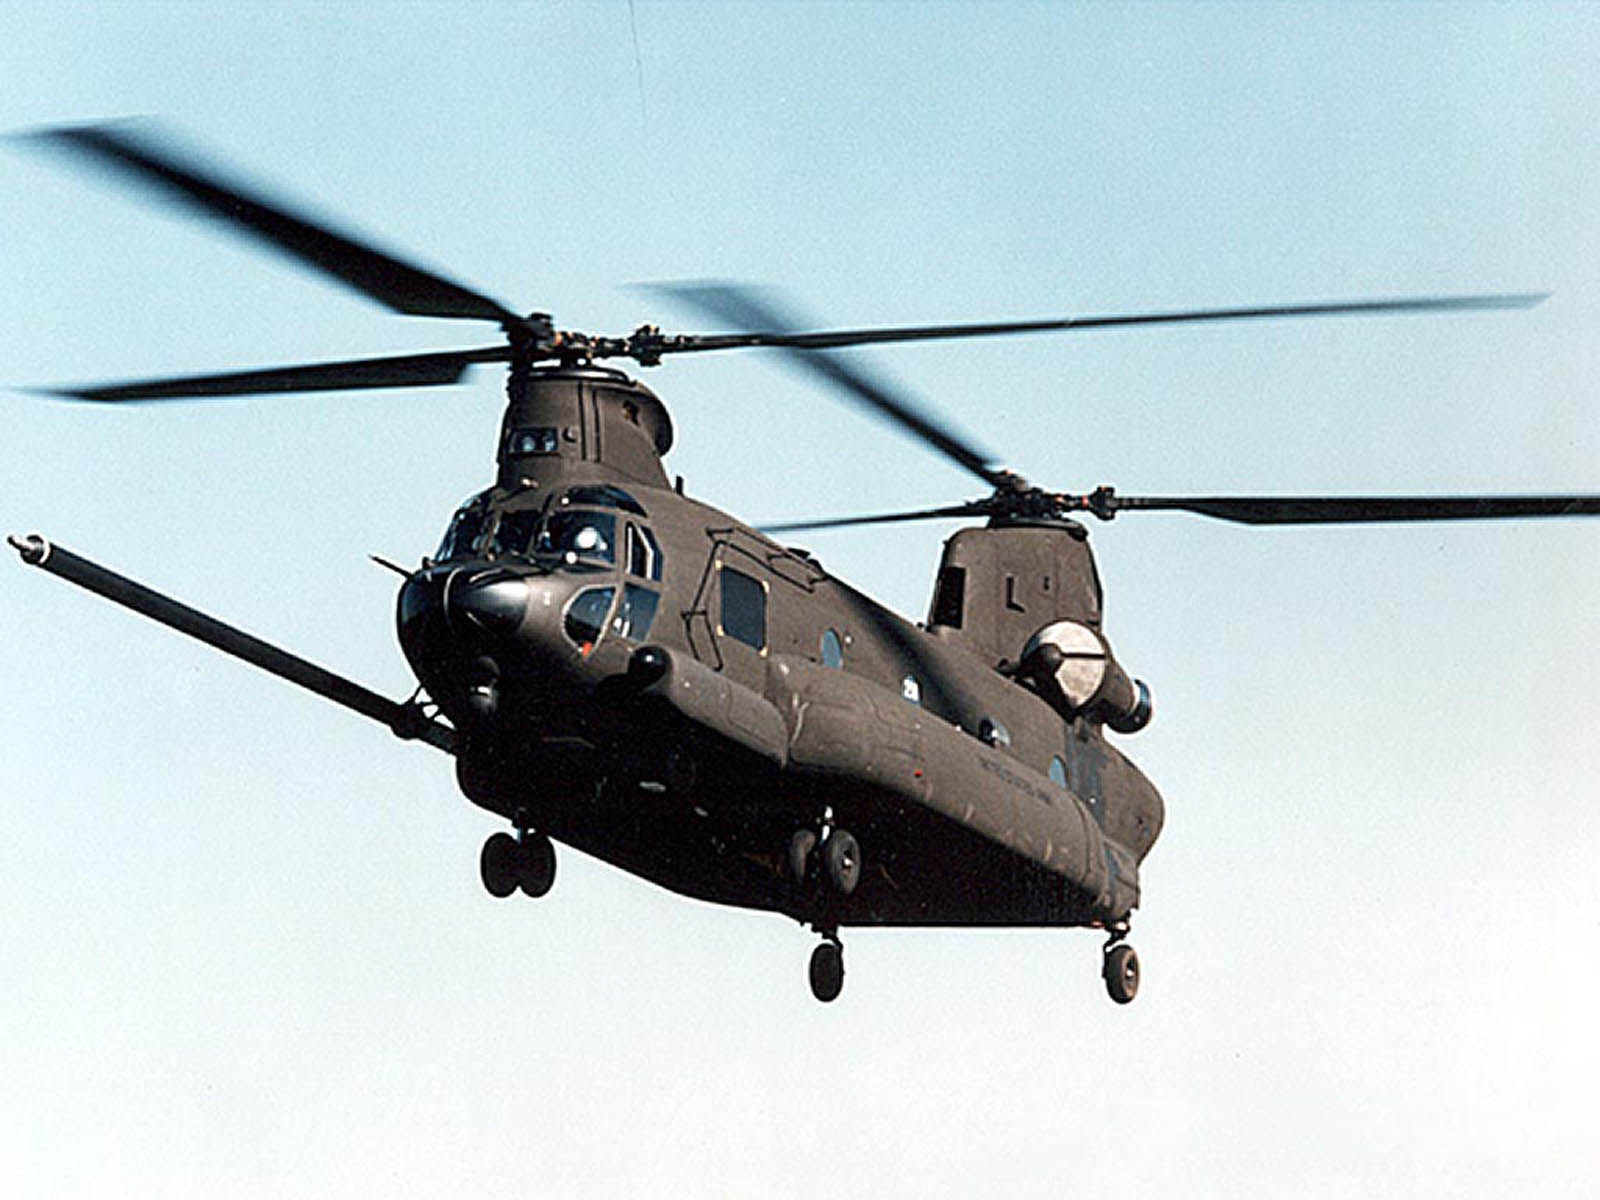 blade helis com with Military Helicopter Wallpapers on Viewtopic likewise 5094997 Exceed Rc Eagle 50 A 8 in addition Syma S107s107g 3 5 Channel Rc Helicopter With Gyro in addition Trex Heli Size  parison as well Showthread.